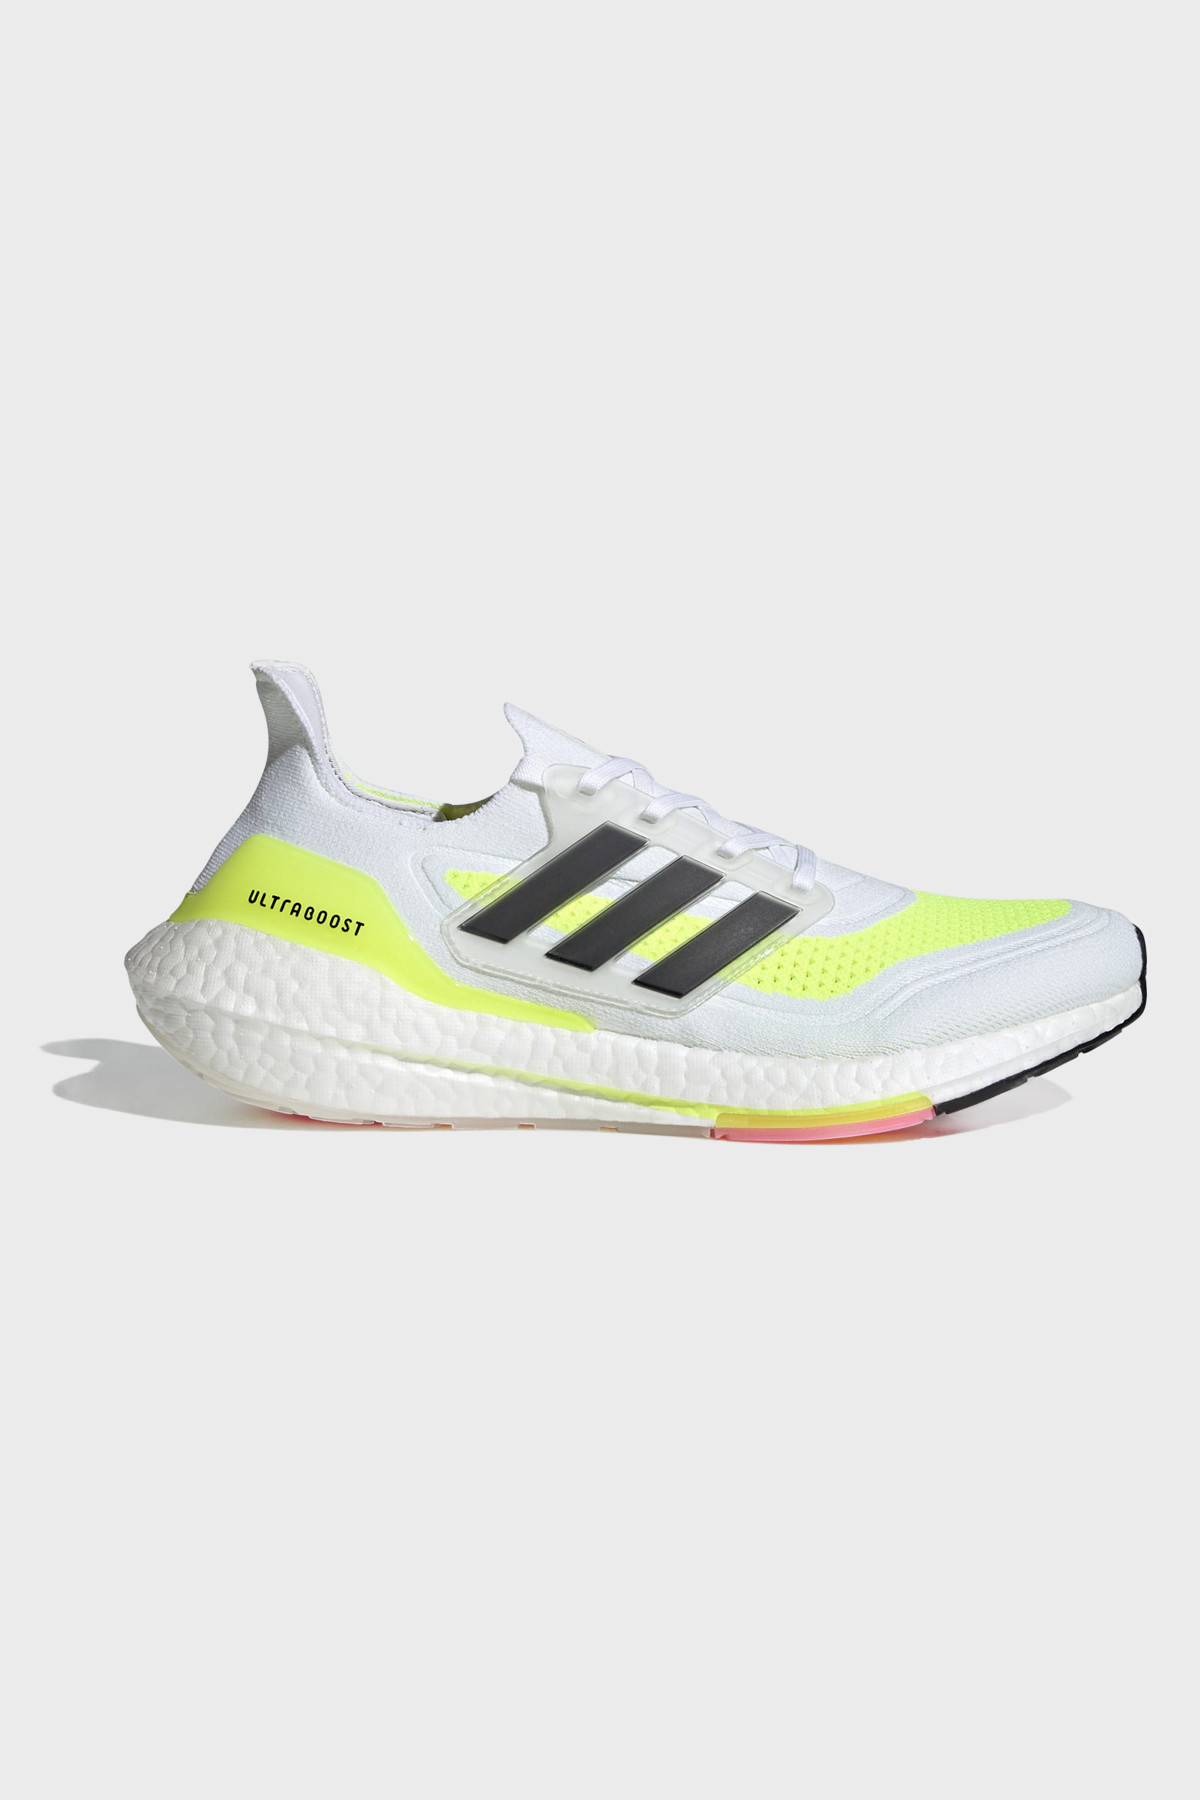 Adidas - Ultraboost 21 - Cloud White Solar Yellow